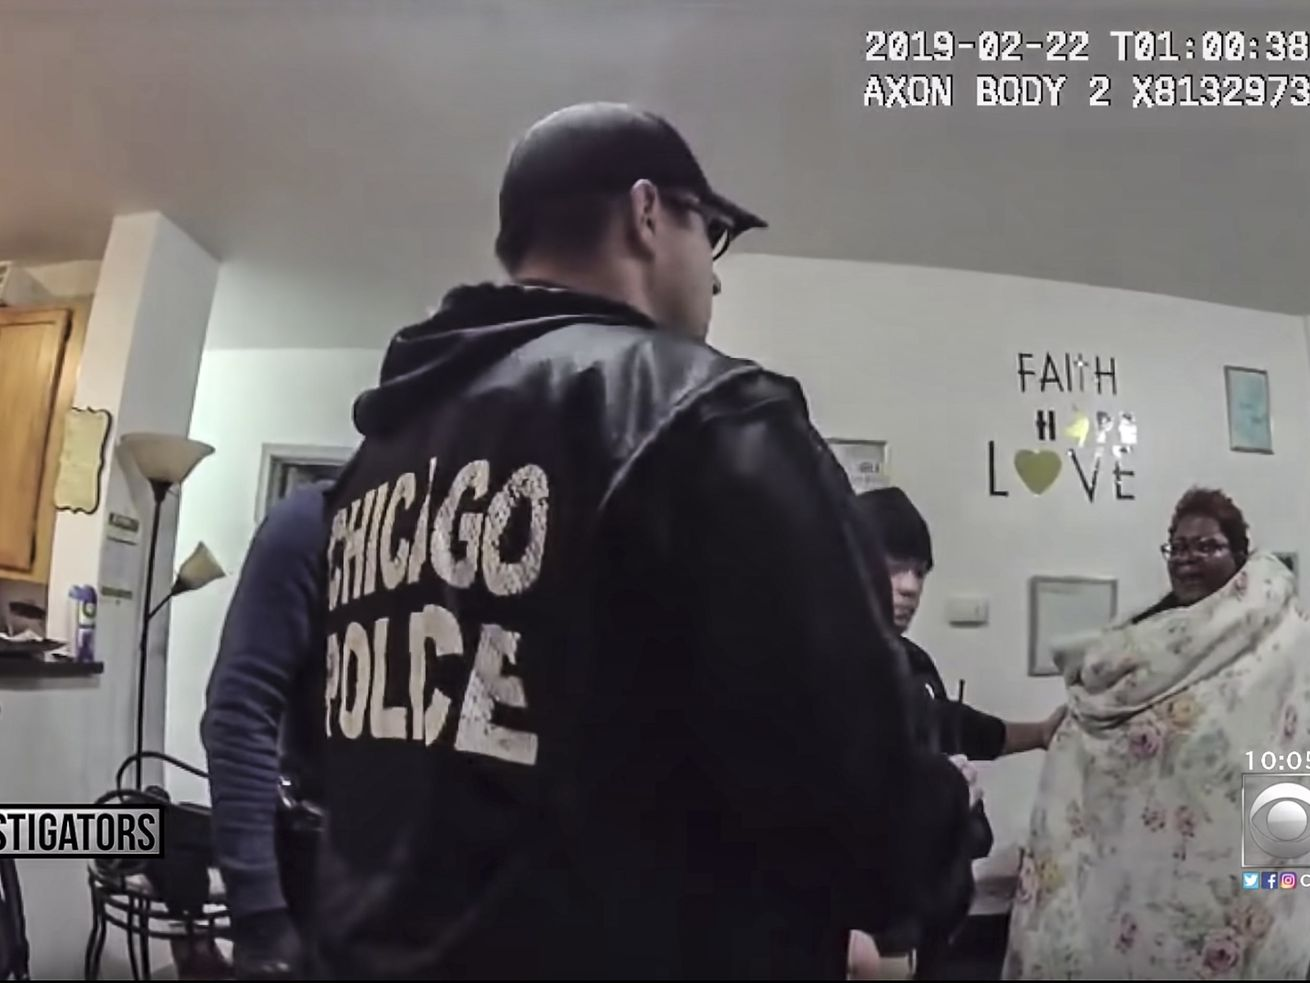 Police body camera video shows the raid on the home of Anjanette Young.